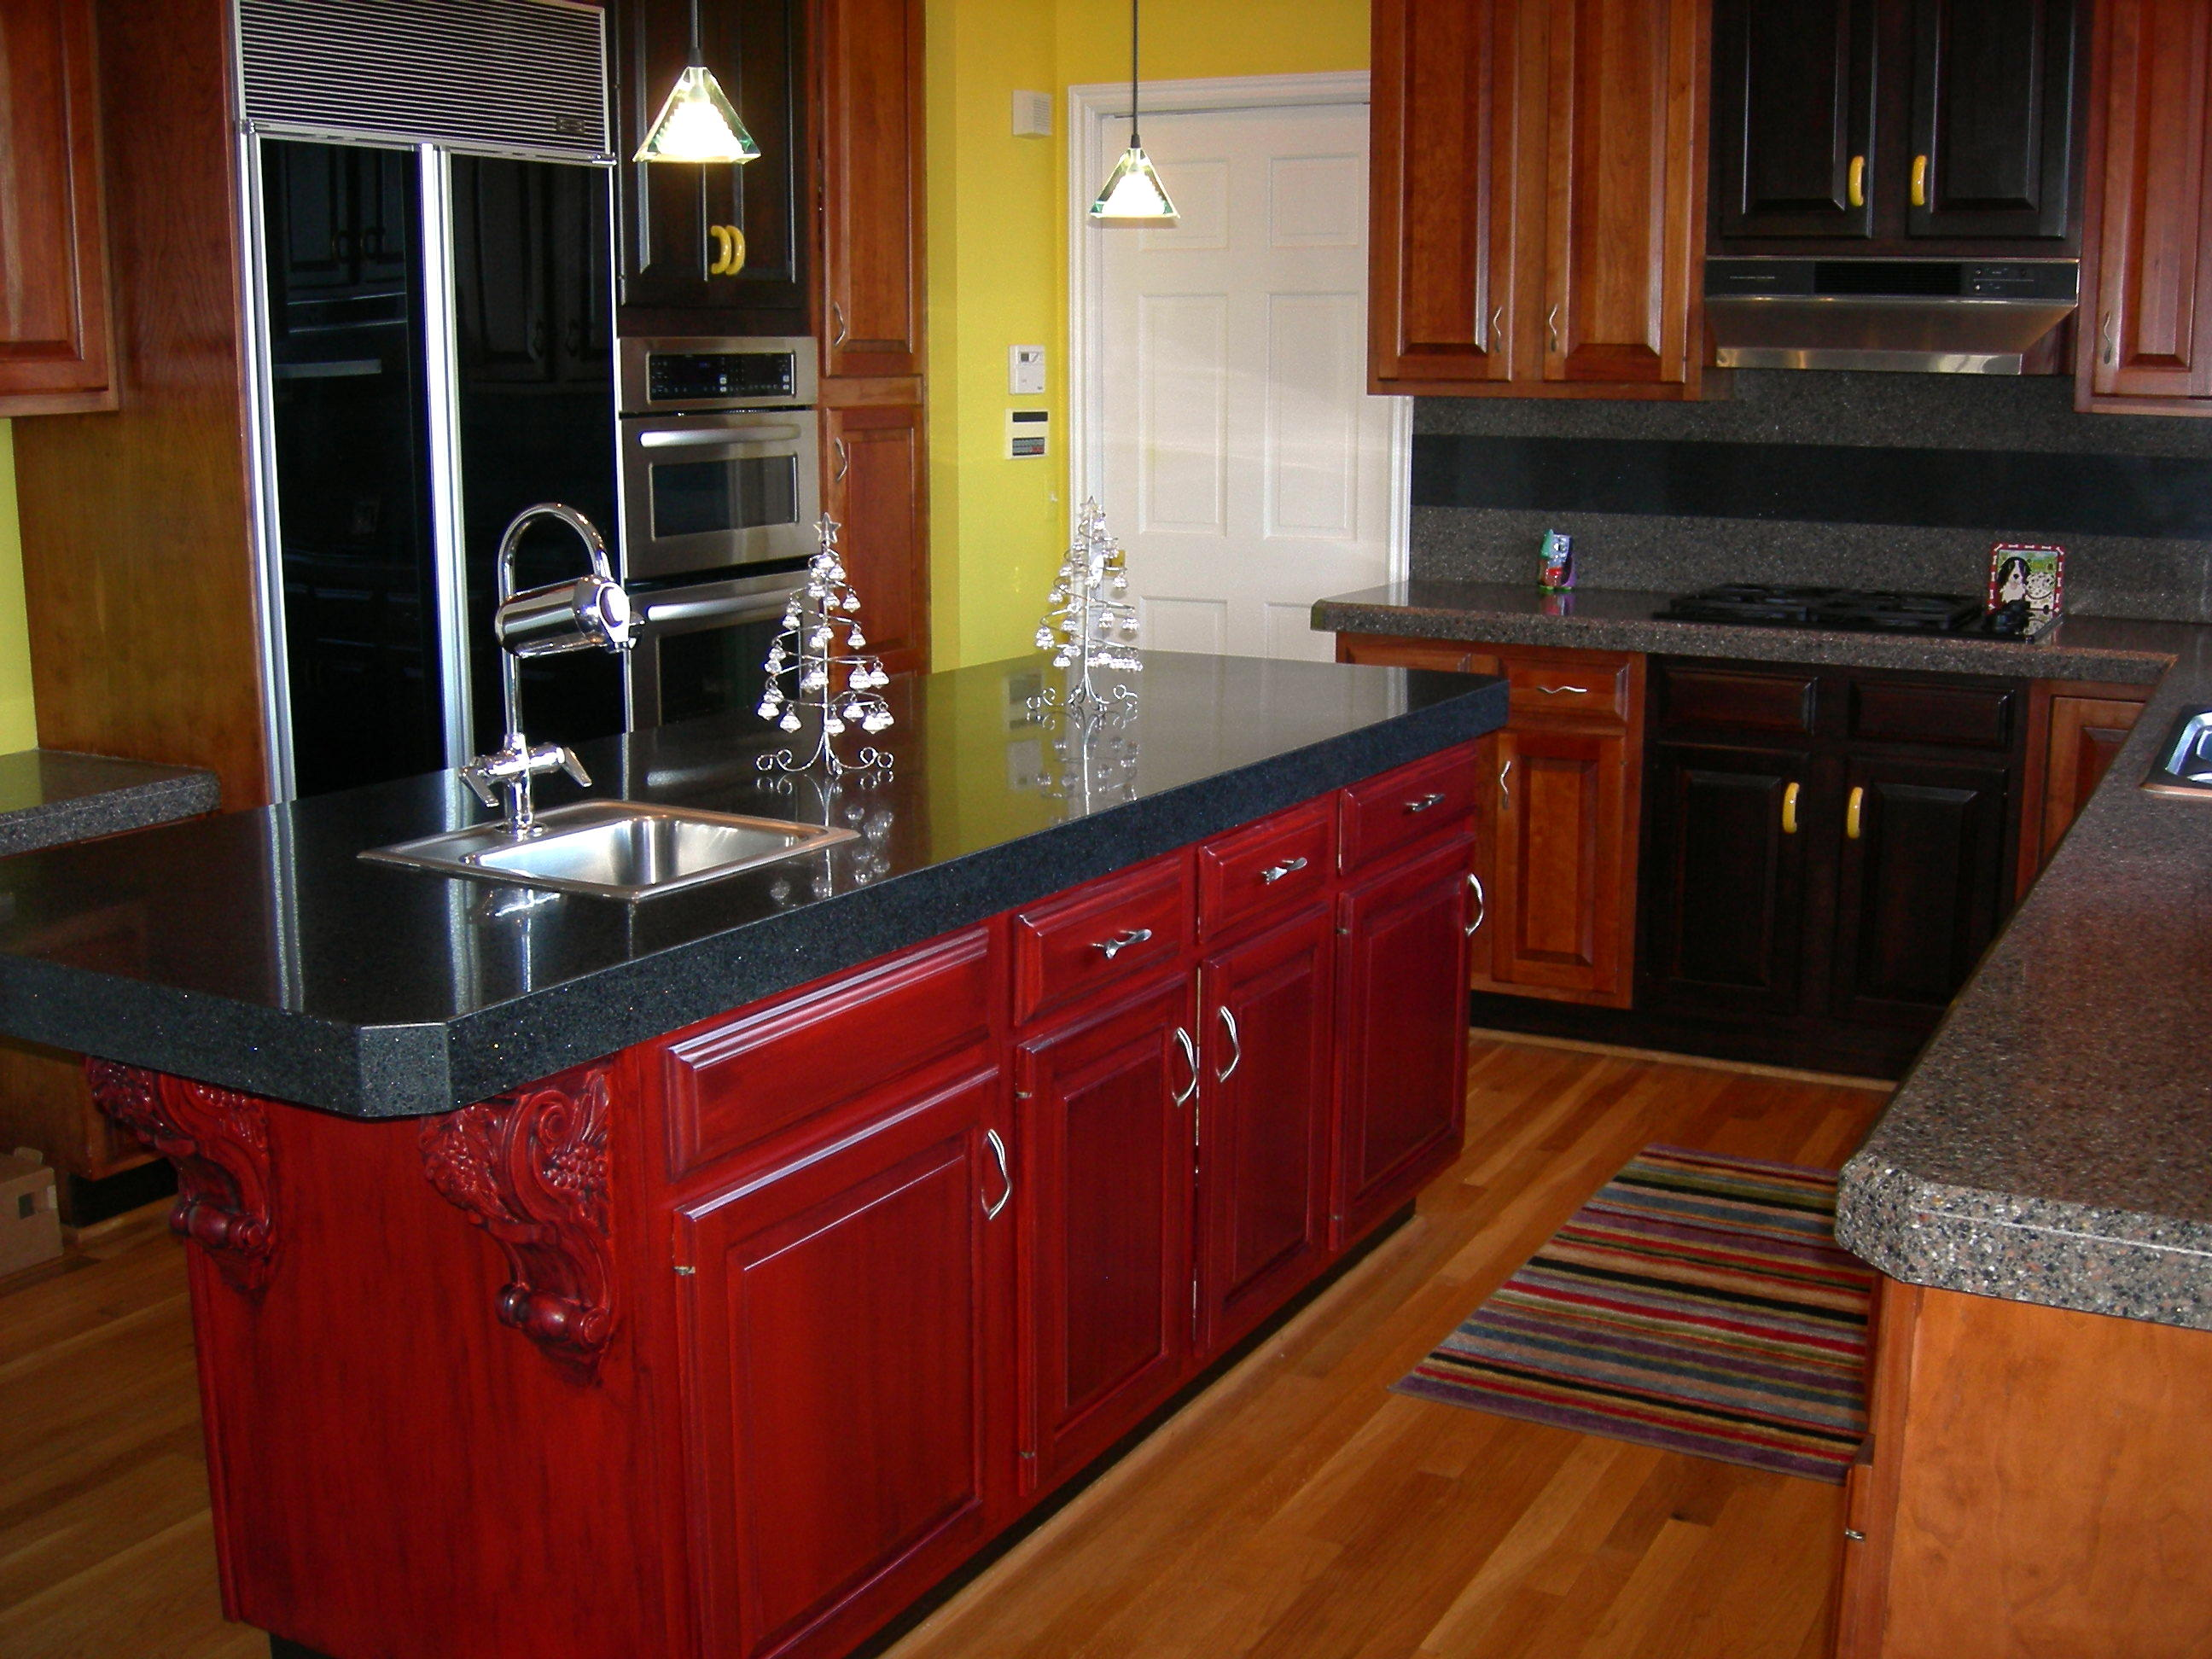 How To Strip And Refinish Kitchen Cabinets Refinishing Cabinets A Simple Do It Yourself Task